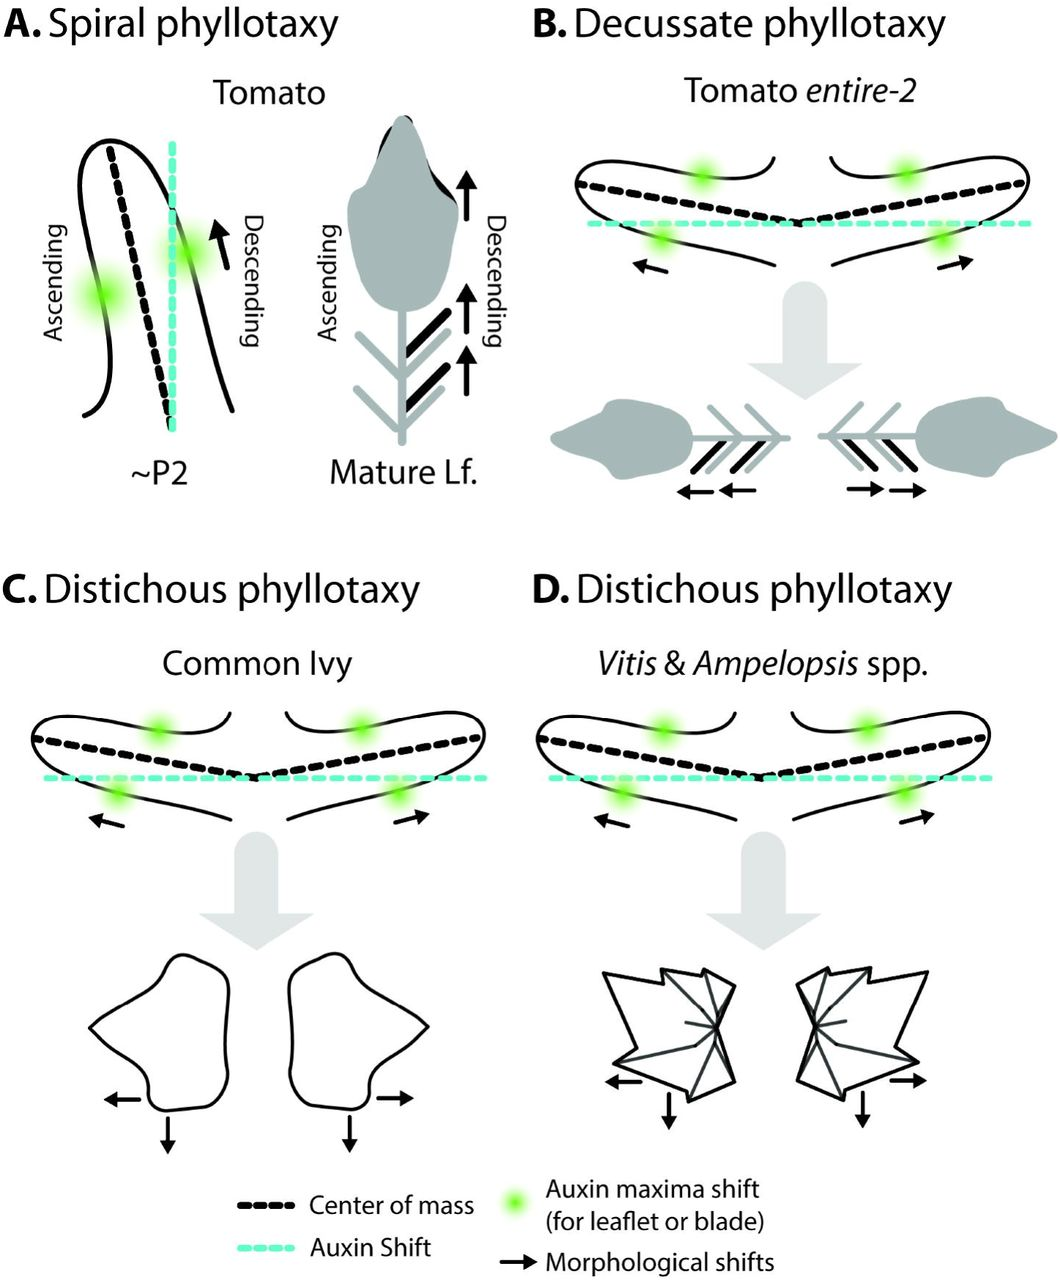 Left-right leaf asymmetry in decussate and distichous